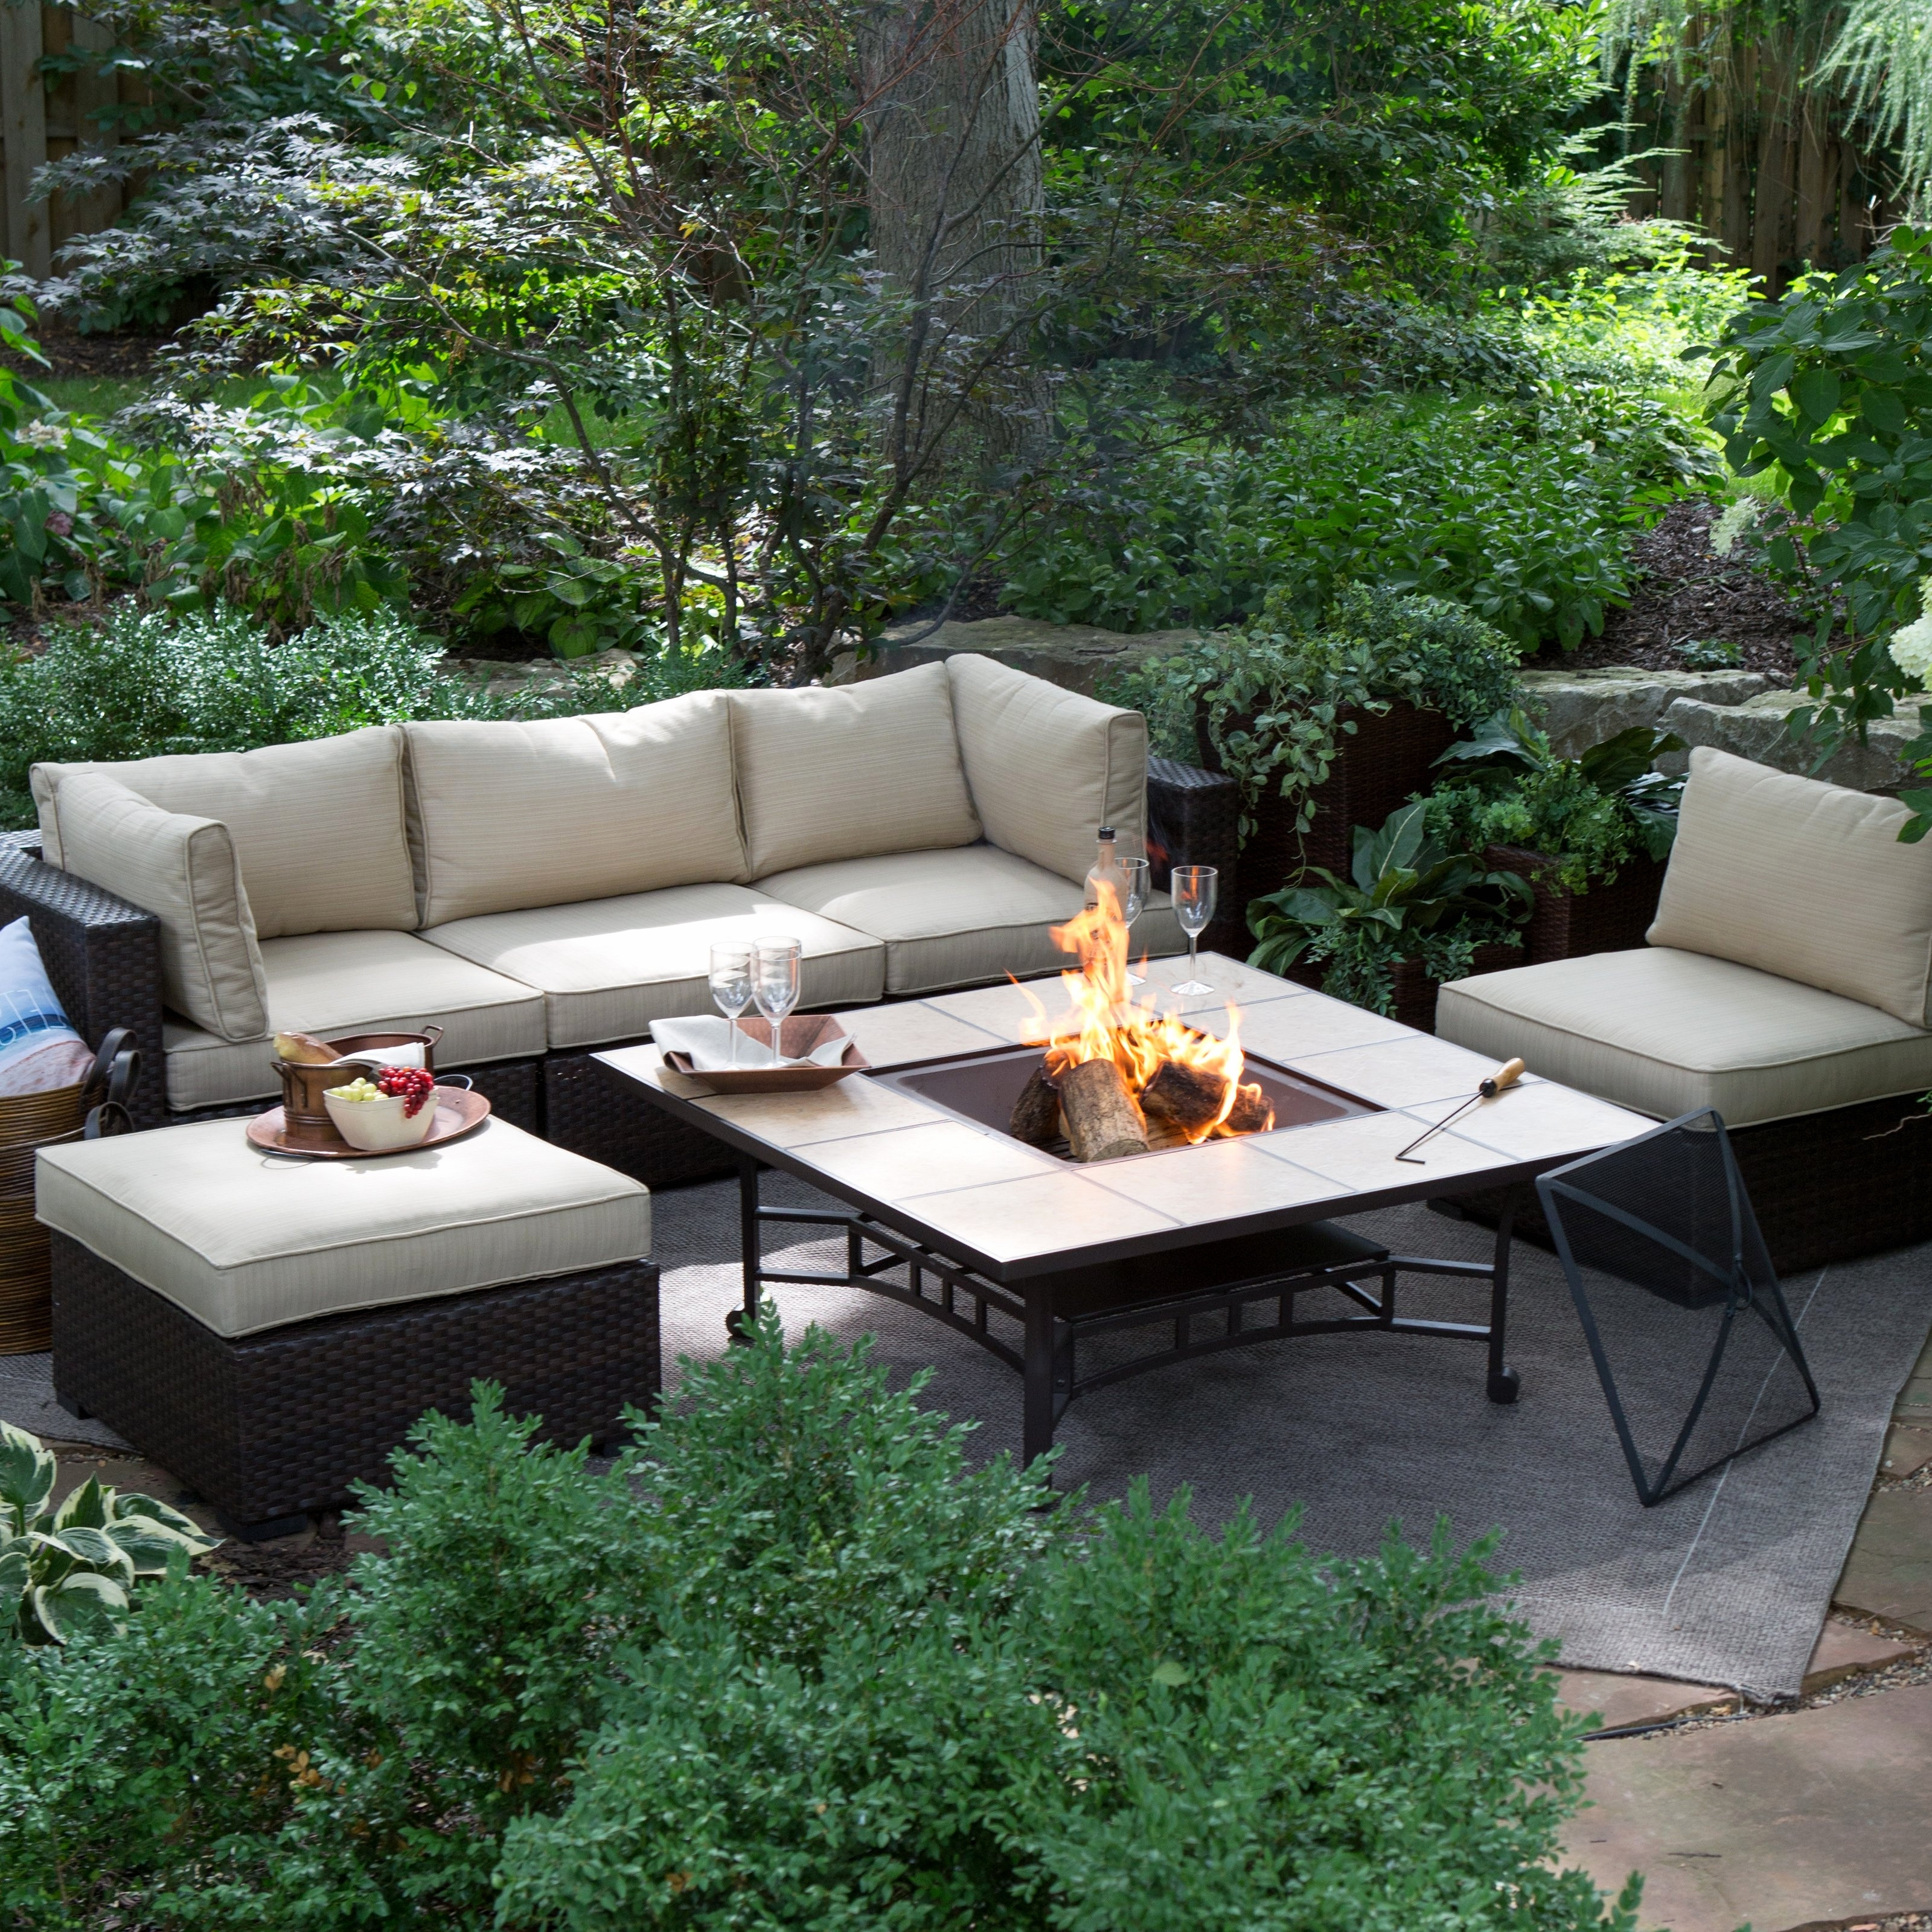 Patio Furniture Conversation Sets With Fire Pit In Most Current Patio Table With Gas Fire Pit Lovely Conversation Sets Fire Pit (View 12 of 20)